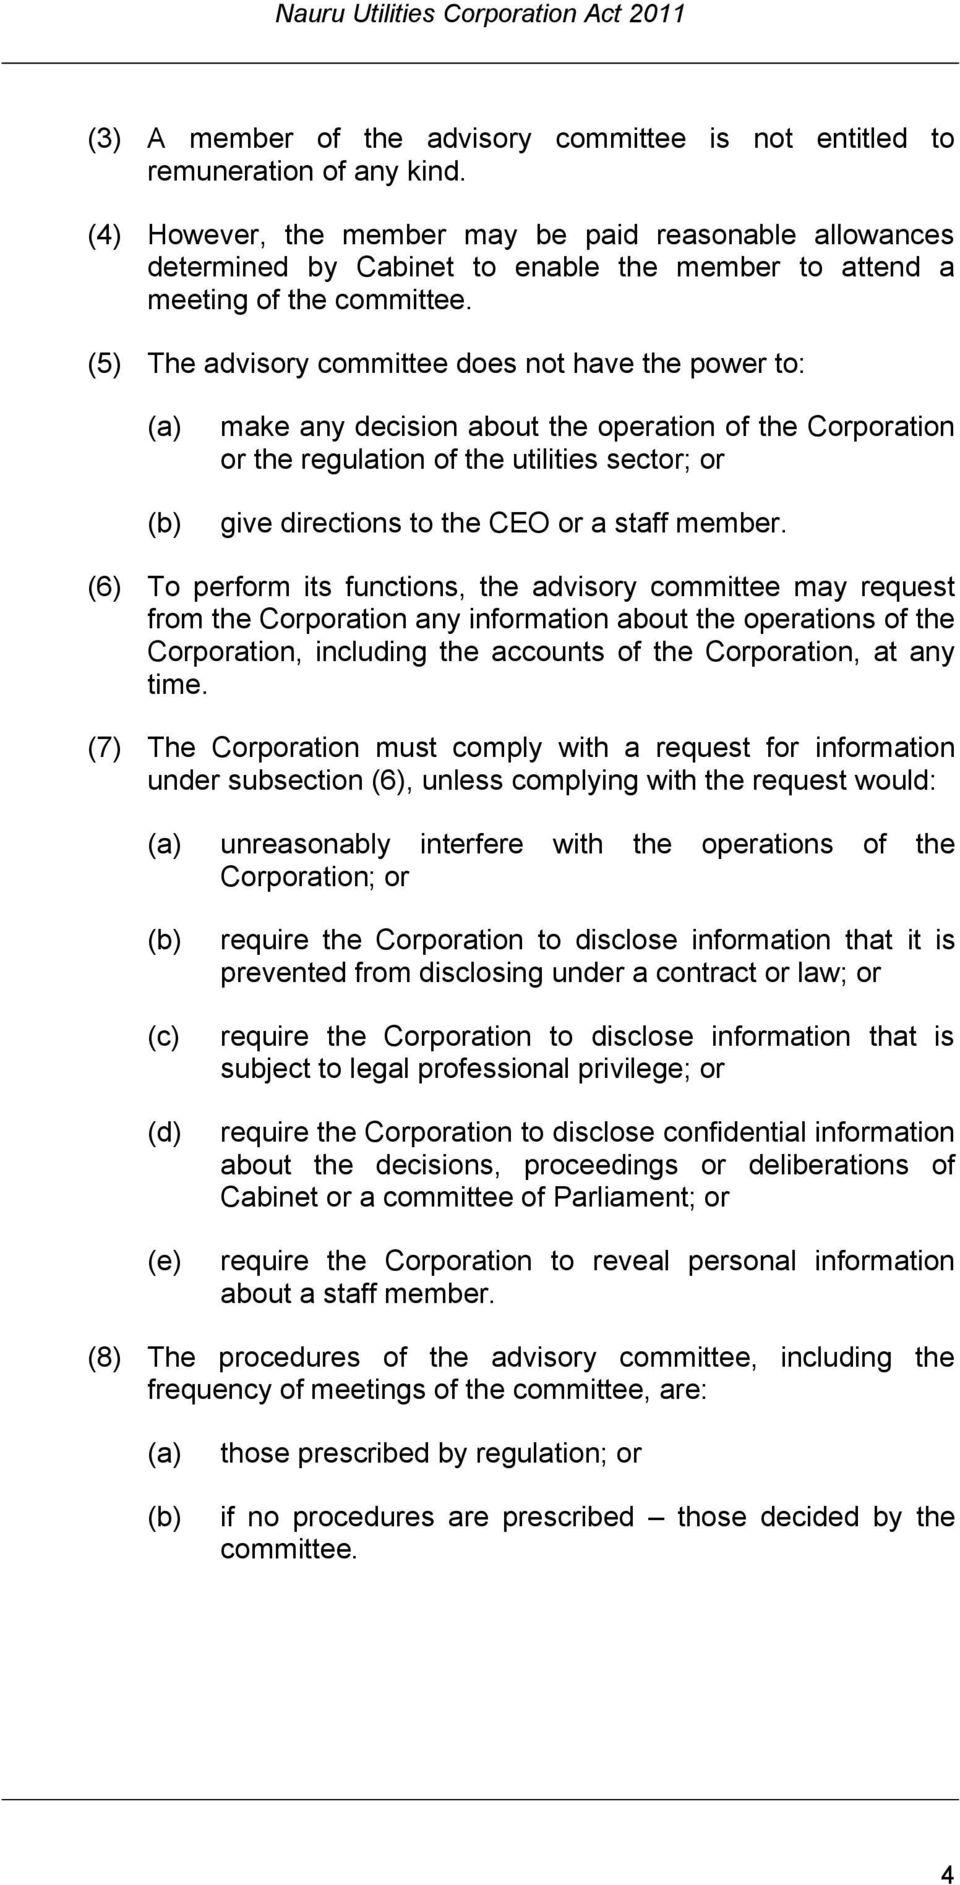 (5) The advisory committee does not have the power to: make any decision about the operation of the Corporation or the regulation of the utilities sector; or give directions to the CEO or a staff